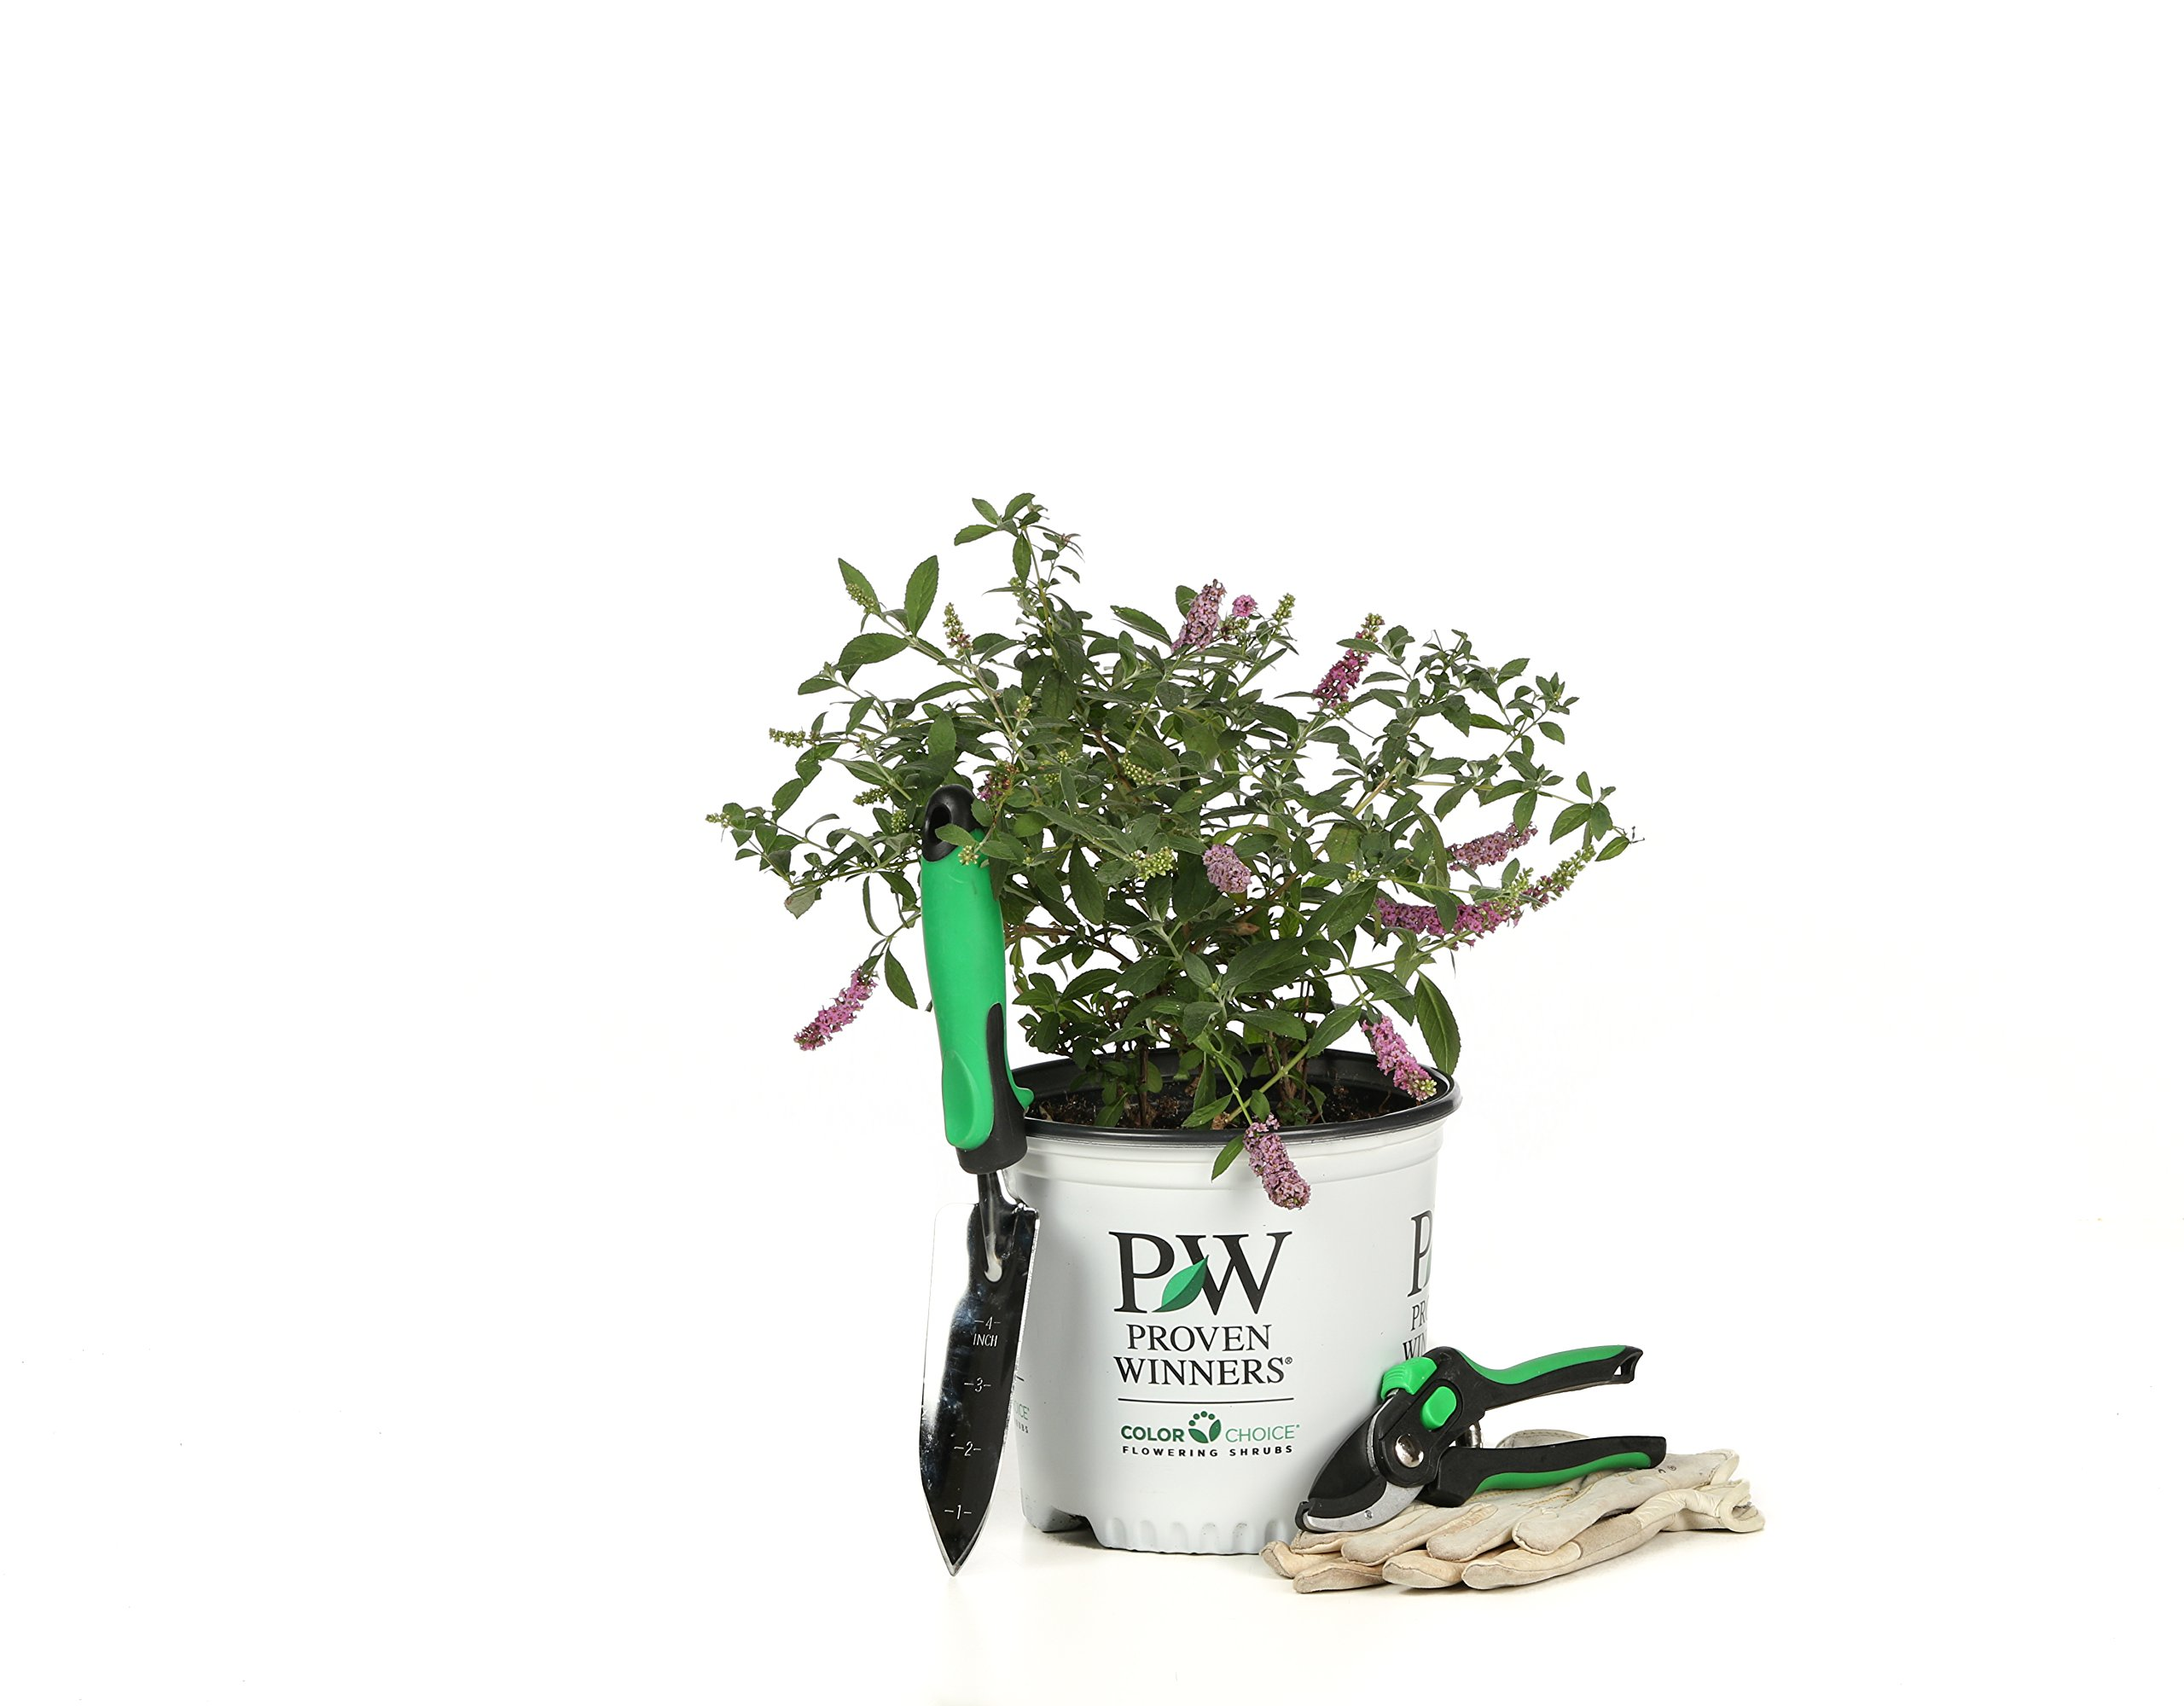 1 Gal. Lo & Behold 'Pink Micro Chip' Butterfly Bush (Buddleia) Live Shrub, Pink Flowers by Proven Winners (Image #8)